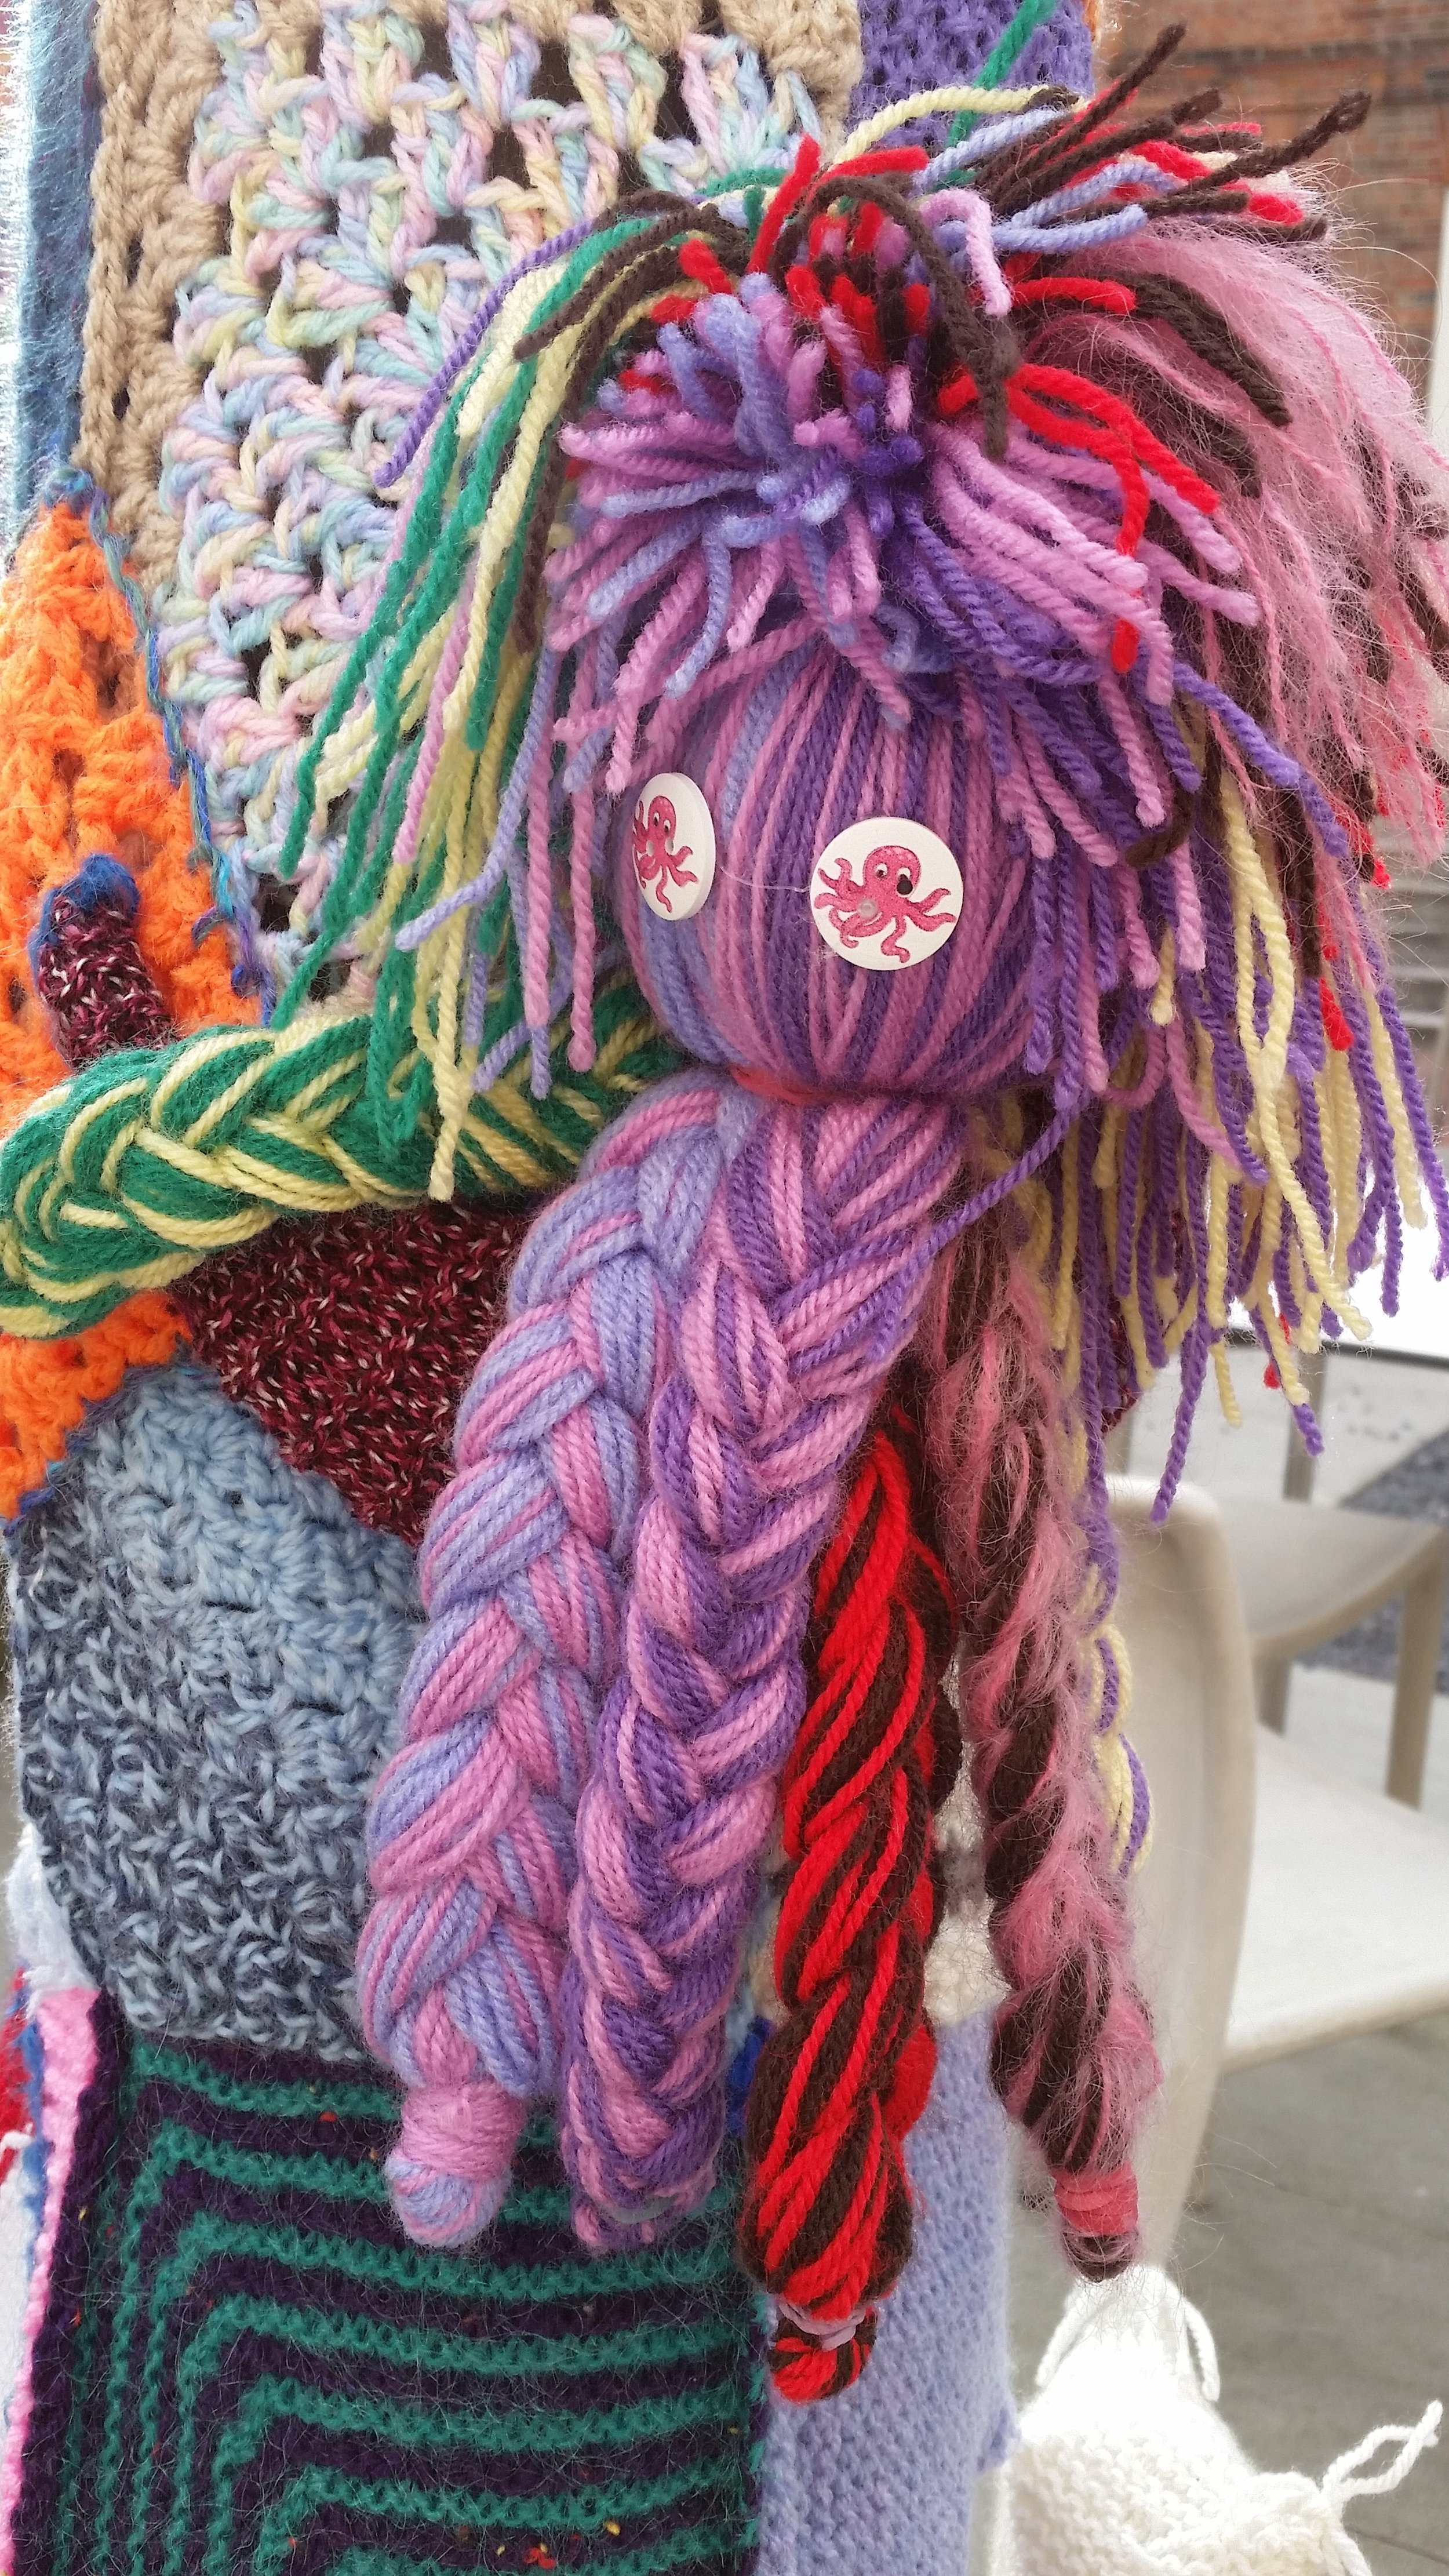 the octopus' garden - A yarn bombing of Pallant House Gallery's garden with items made by Pallant House Gallery Community Programme & Chichester Boys Club